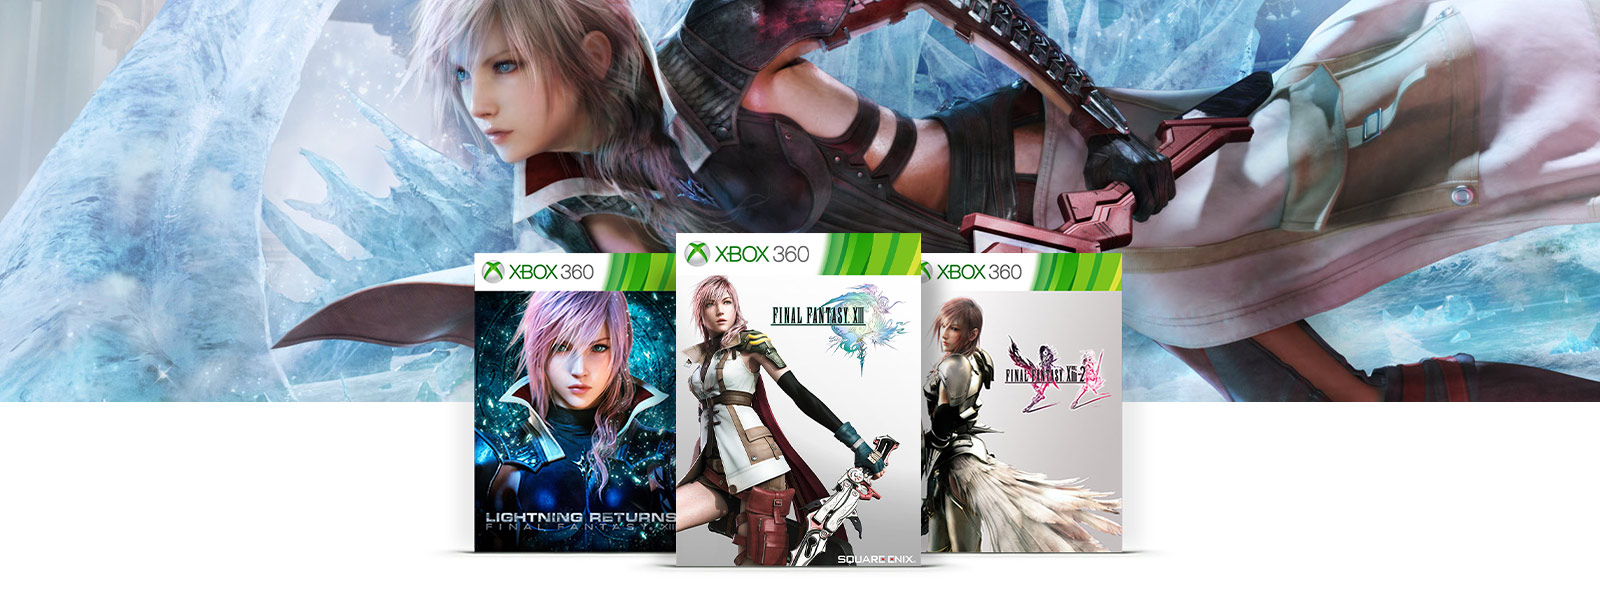 Box art imagery for FINAL FANTASY XIII, FINAL FANTASY XIII-2, and LIGHTNING RETURNS FINAL FANTASY shown over the character Lightning